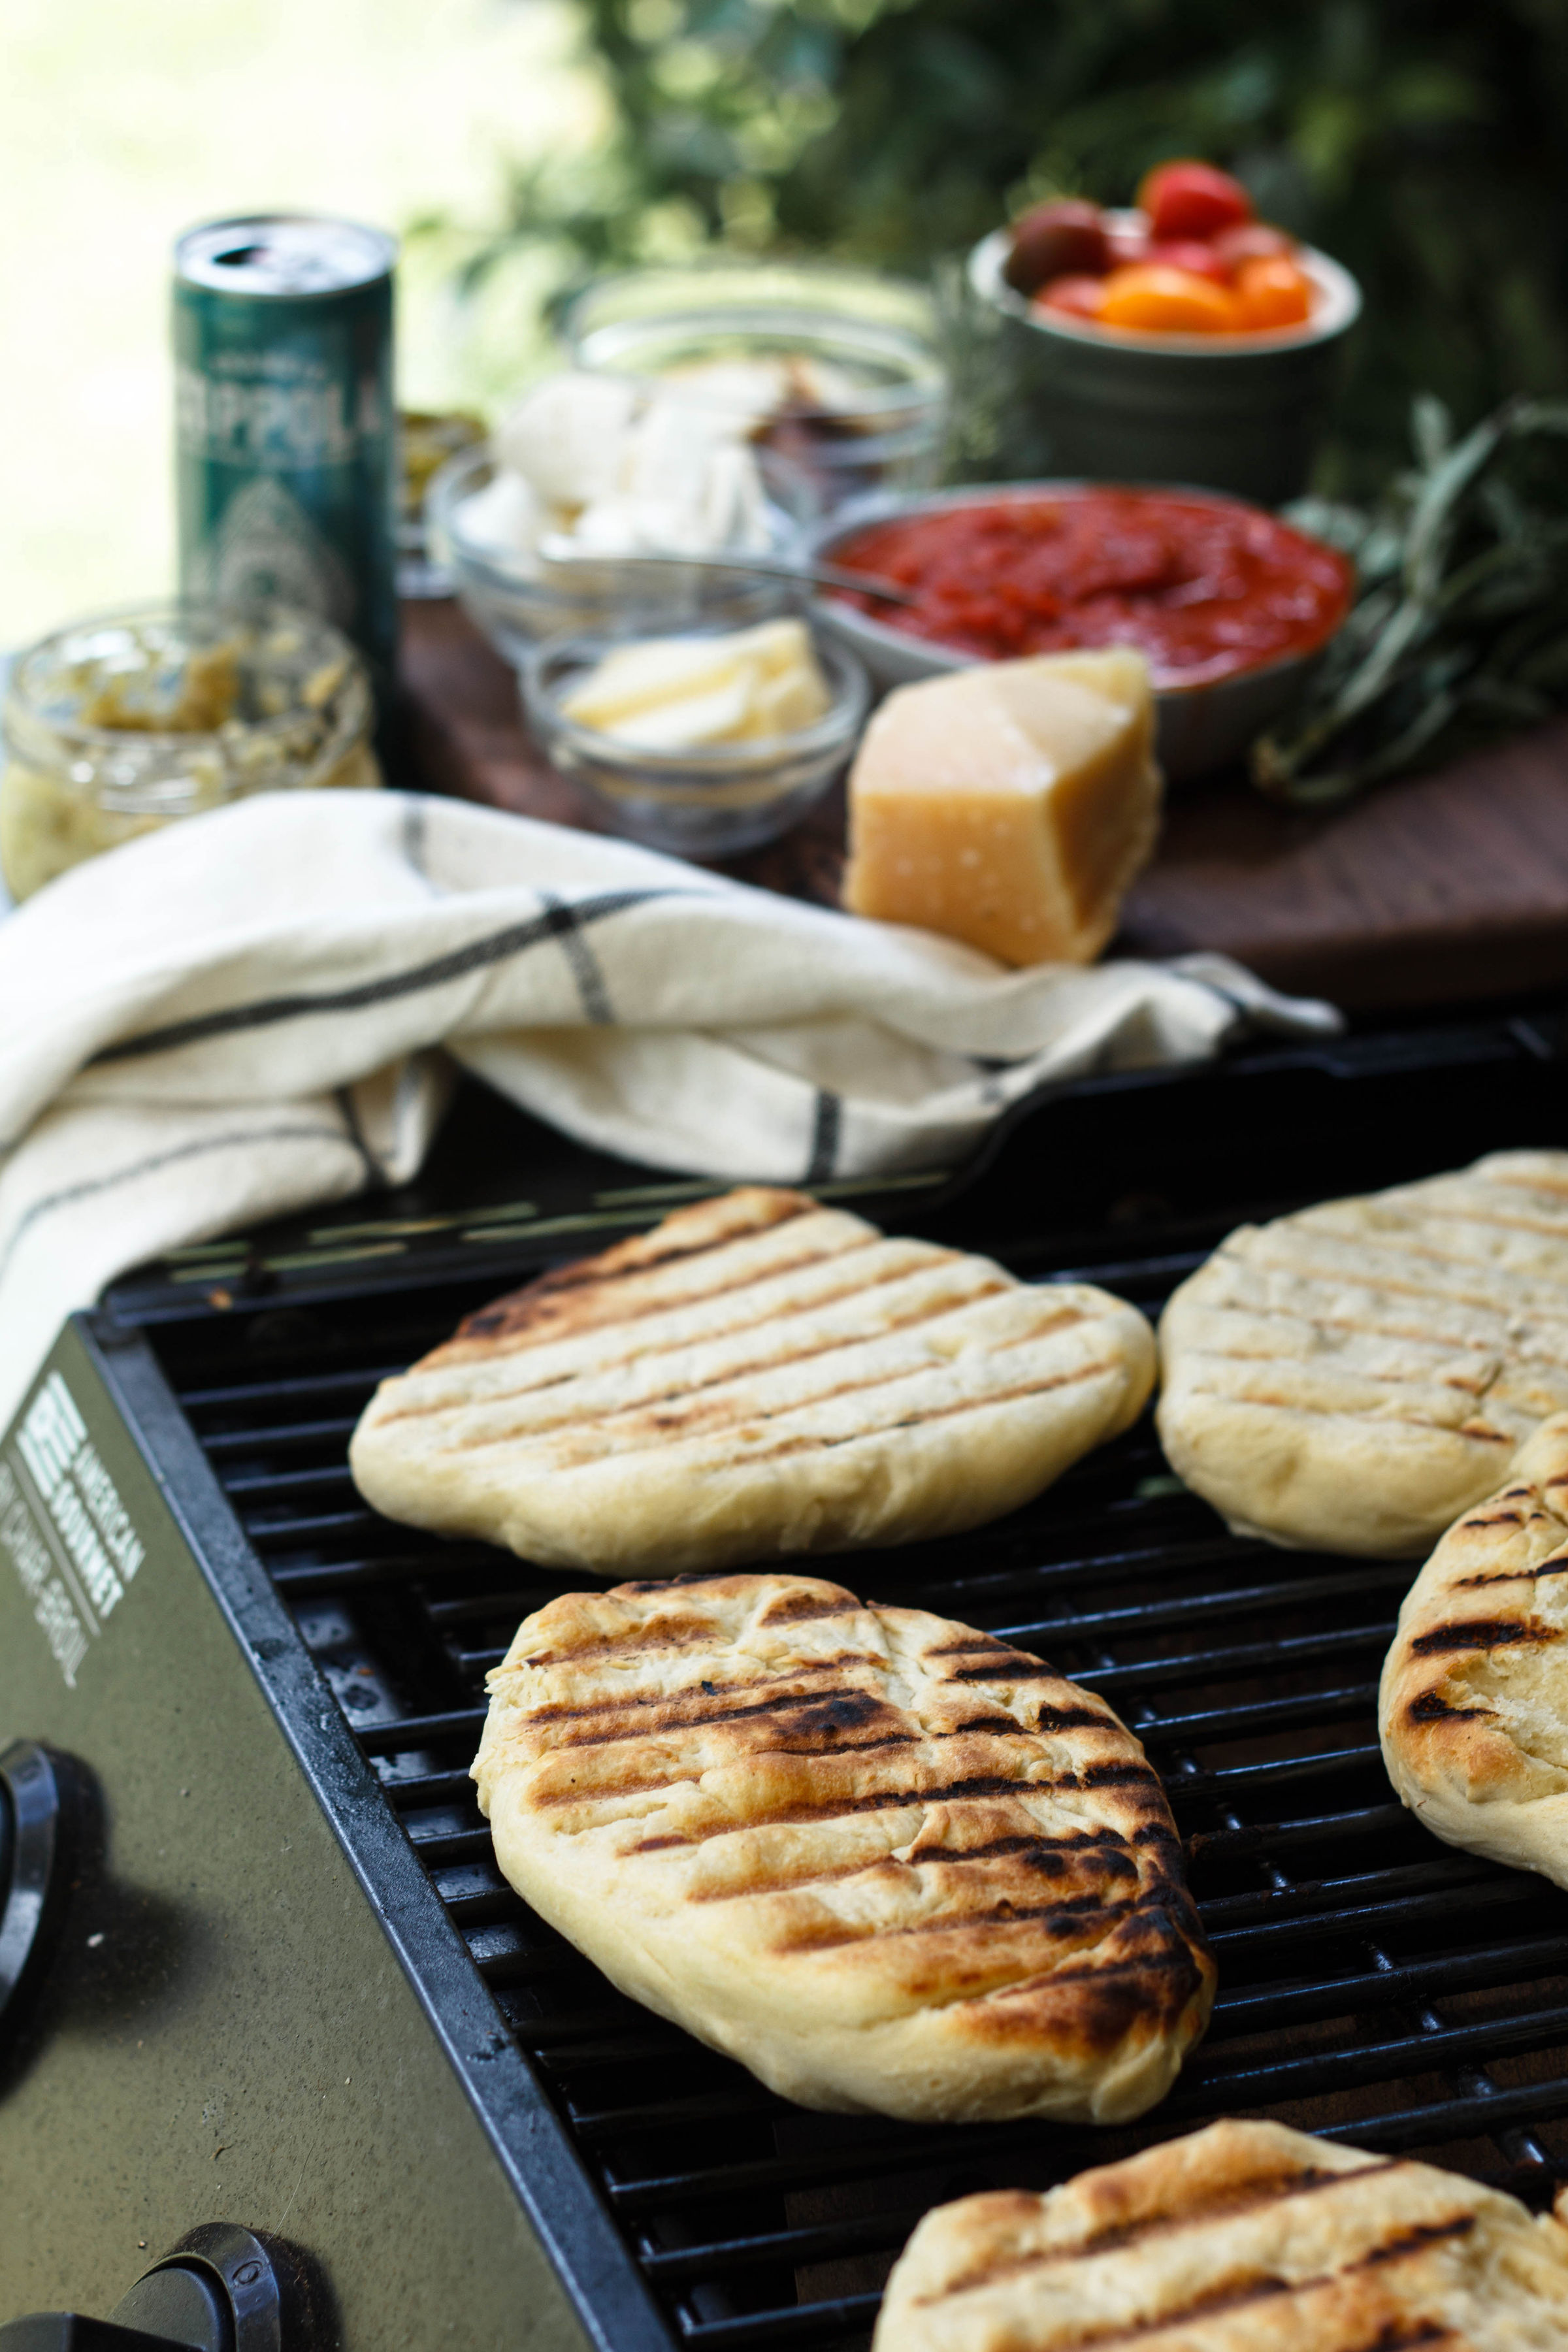 Pizza dough with grill marks